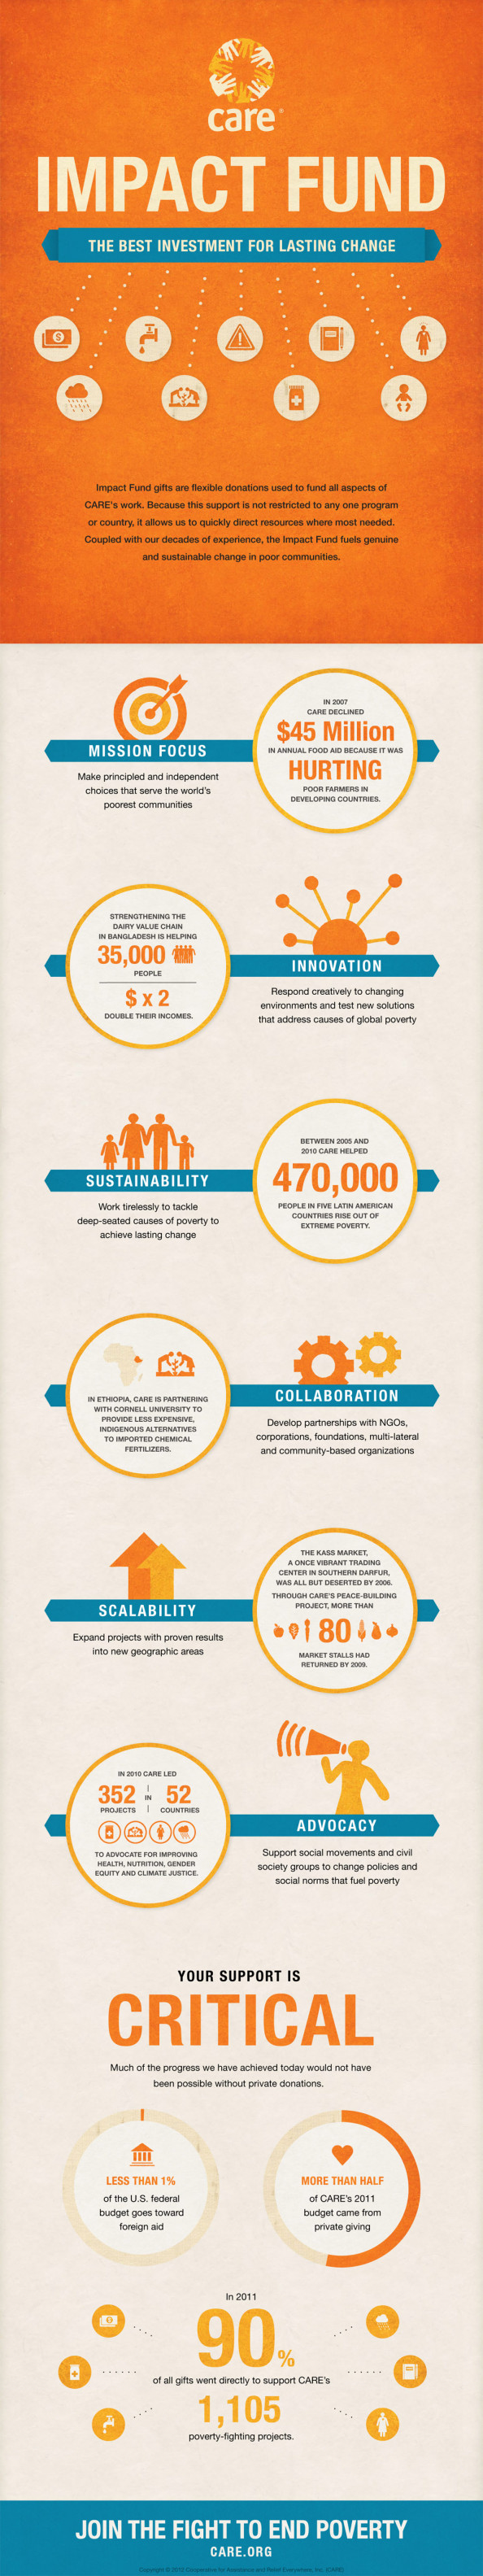 How CARE is fighting poverty Infographic